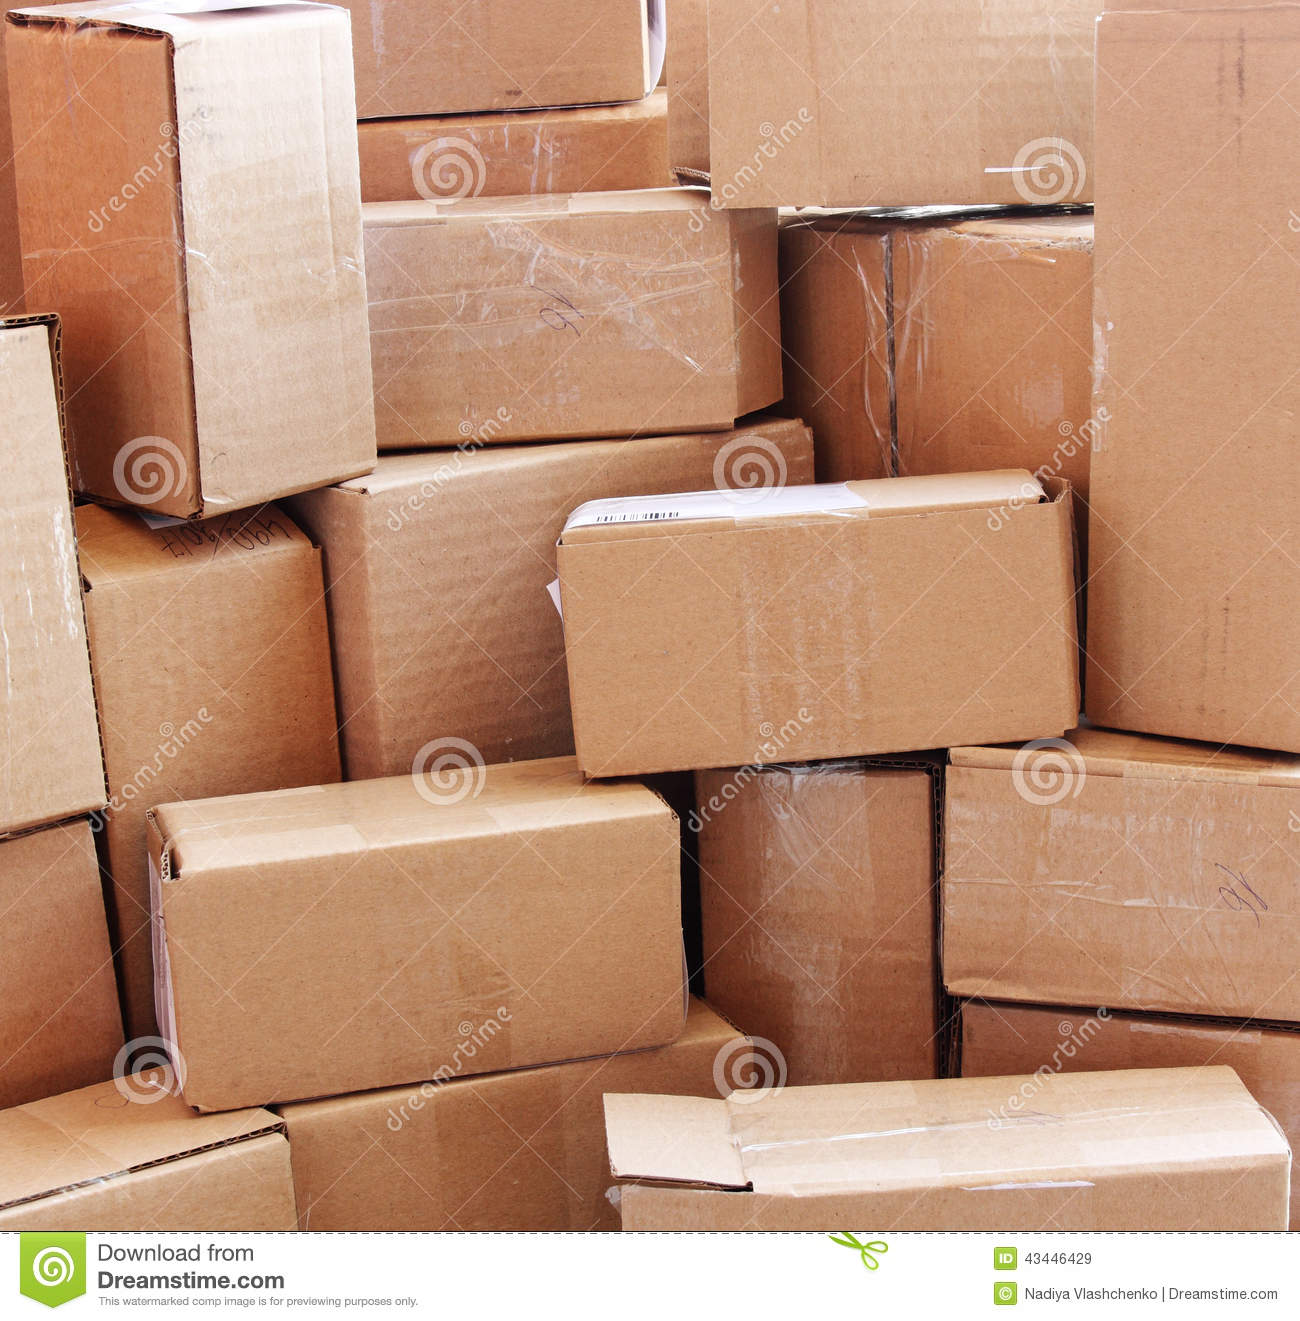 Uhaul Box Exchange – Uhaul made a free message board for people to find used boxes for free. Home Goods Stores and Toy Store – Really, any retailer that has large shipments come in will have a large quantity of cardboard boxes, but home goods stores in particular may have boxes for dishes.